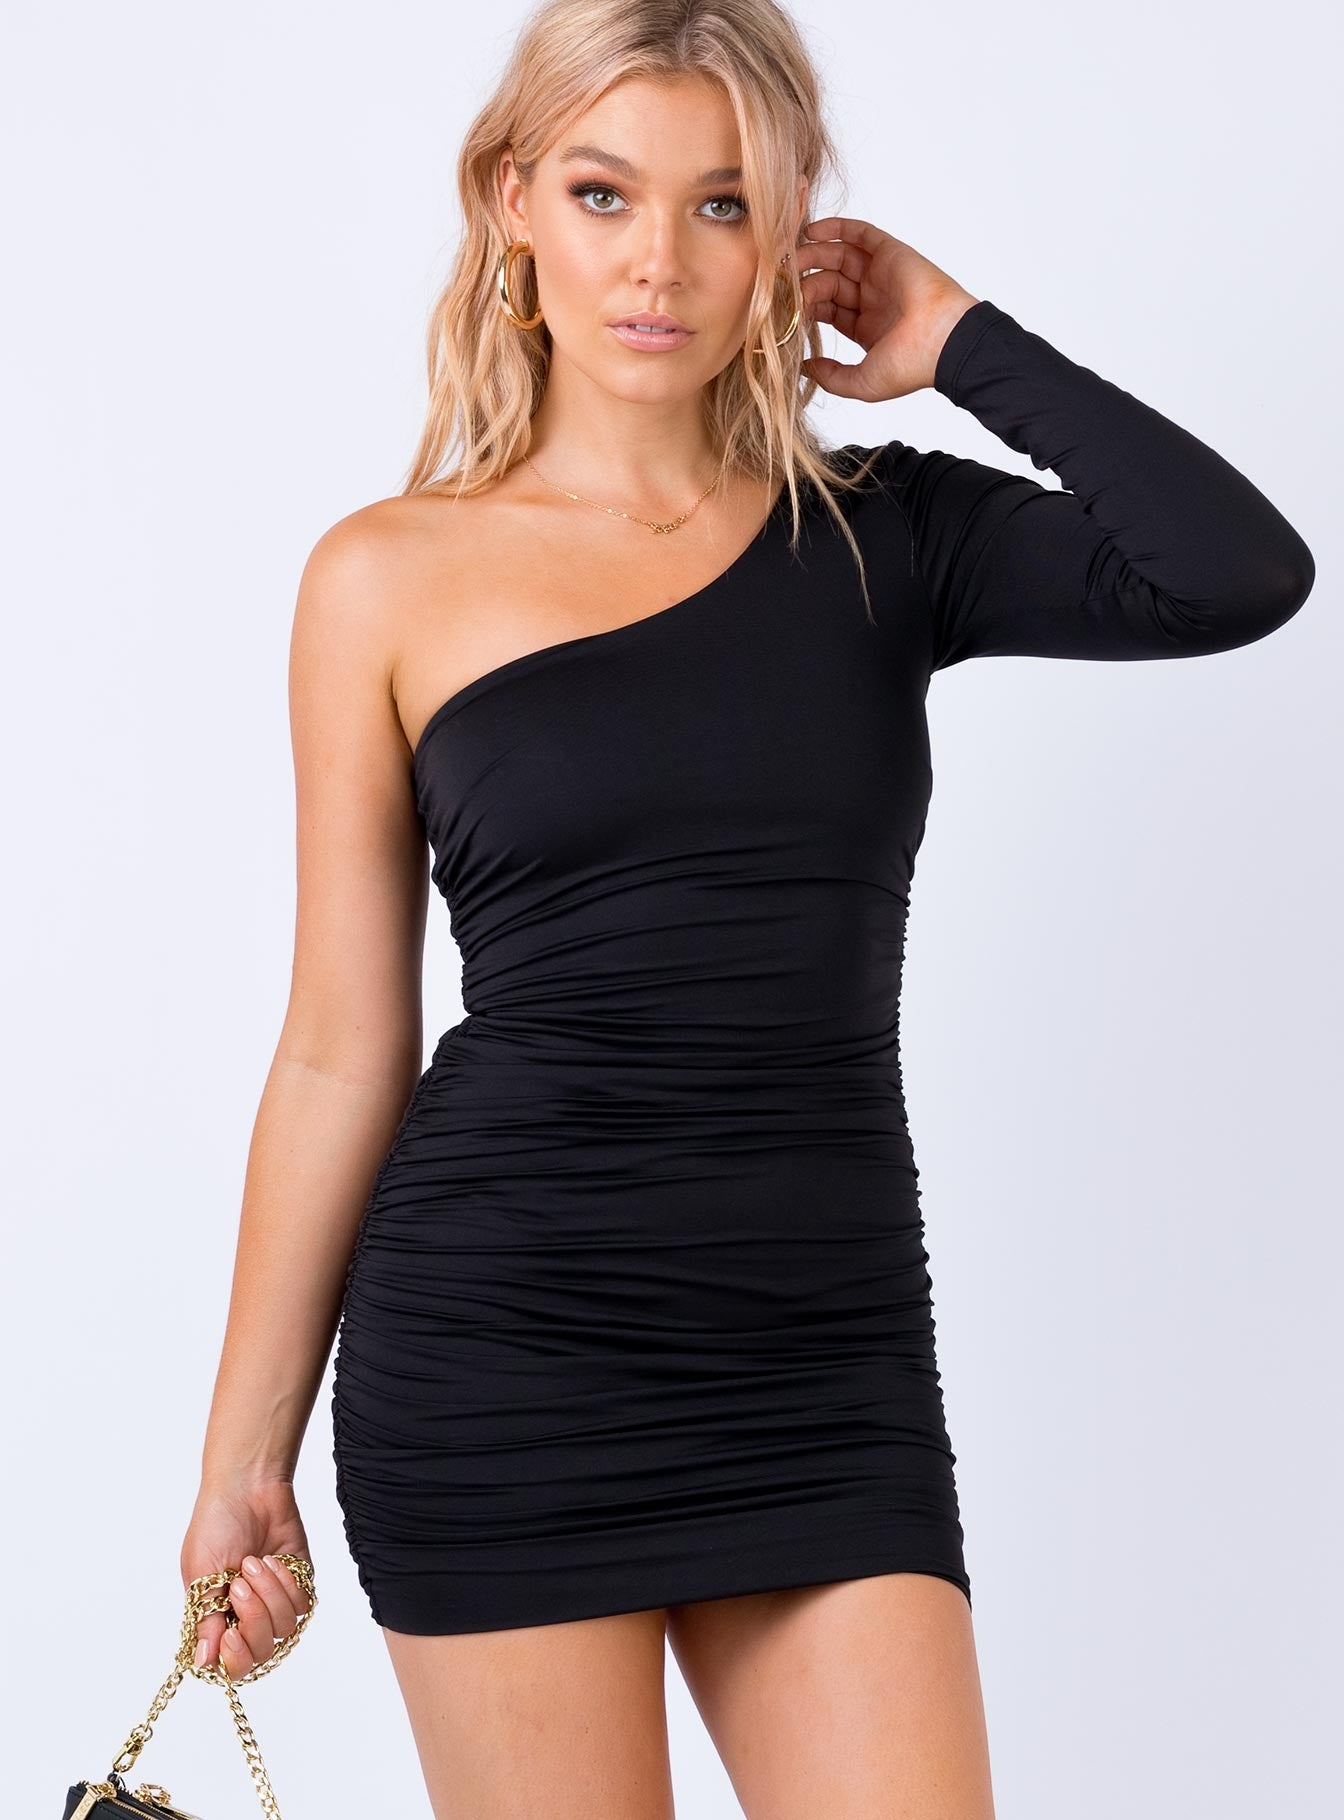 Haliware Mini Dress Black